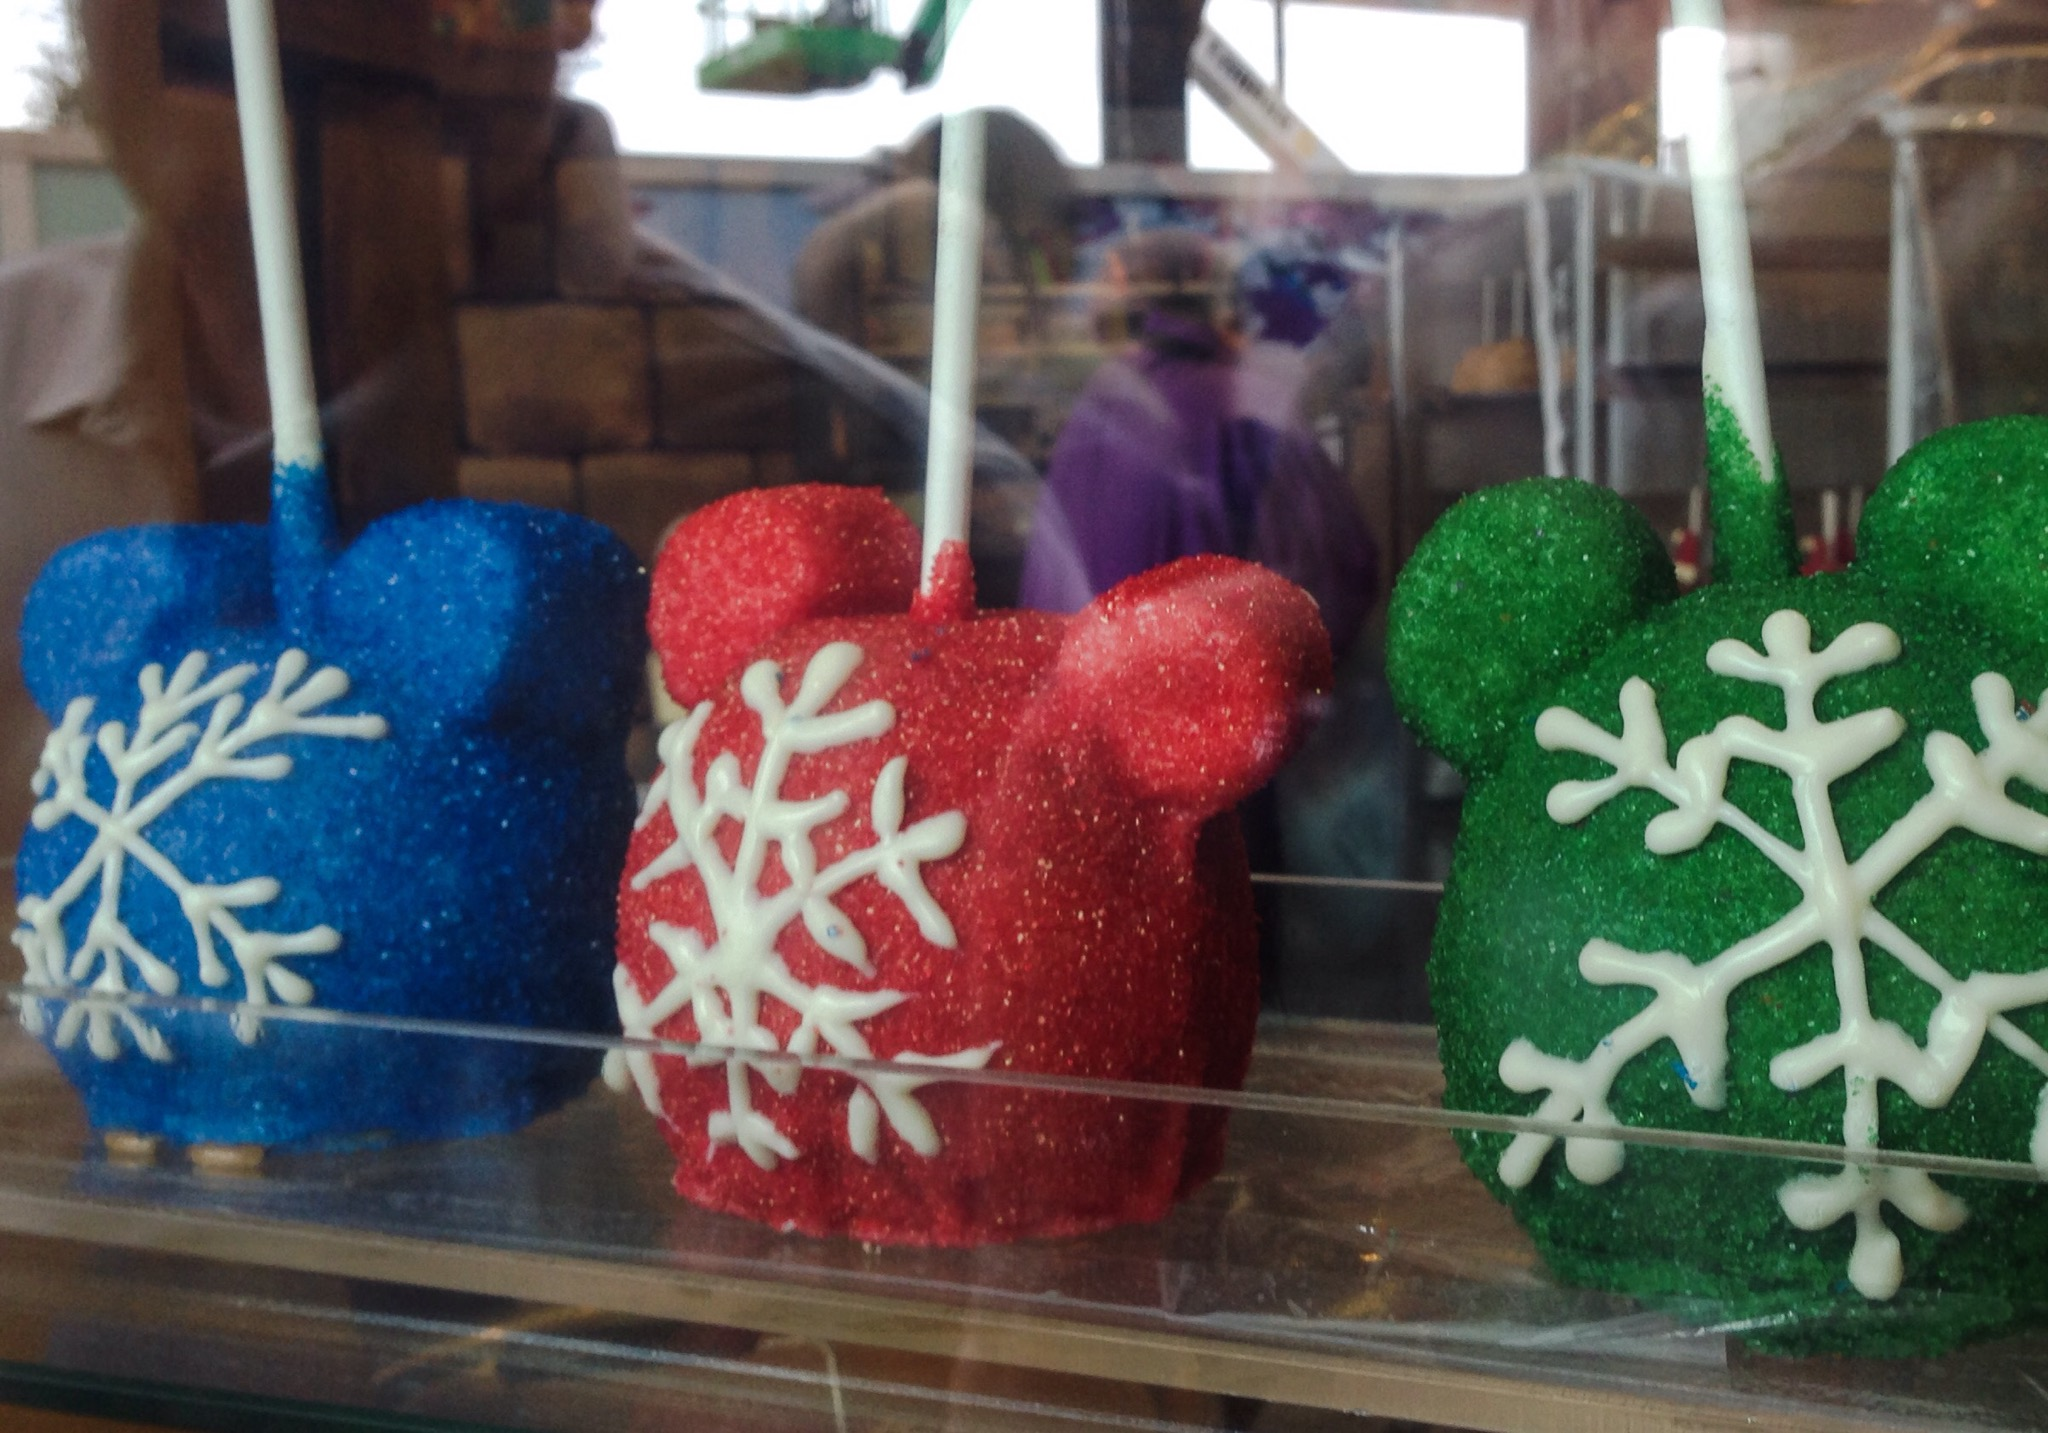 Mickey Mouse head snowflake apples at Walt Disney World.